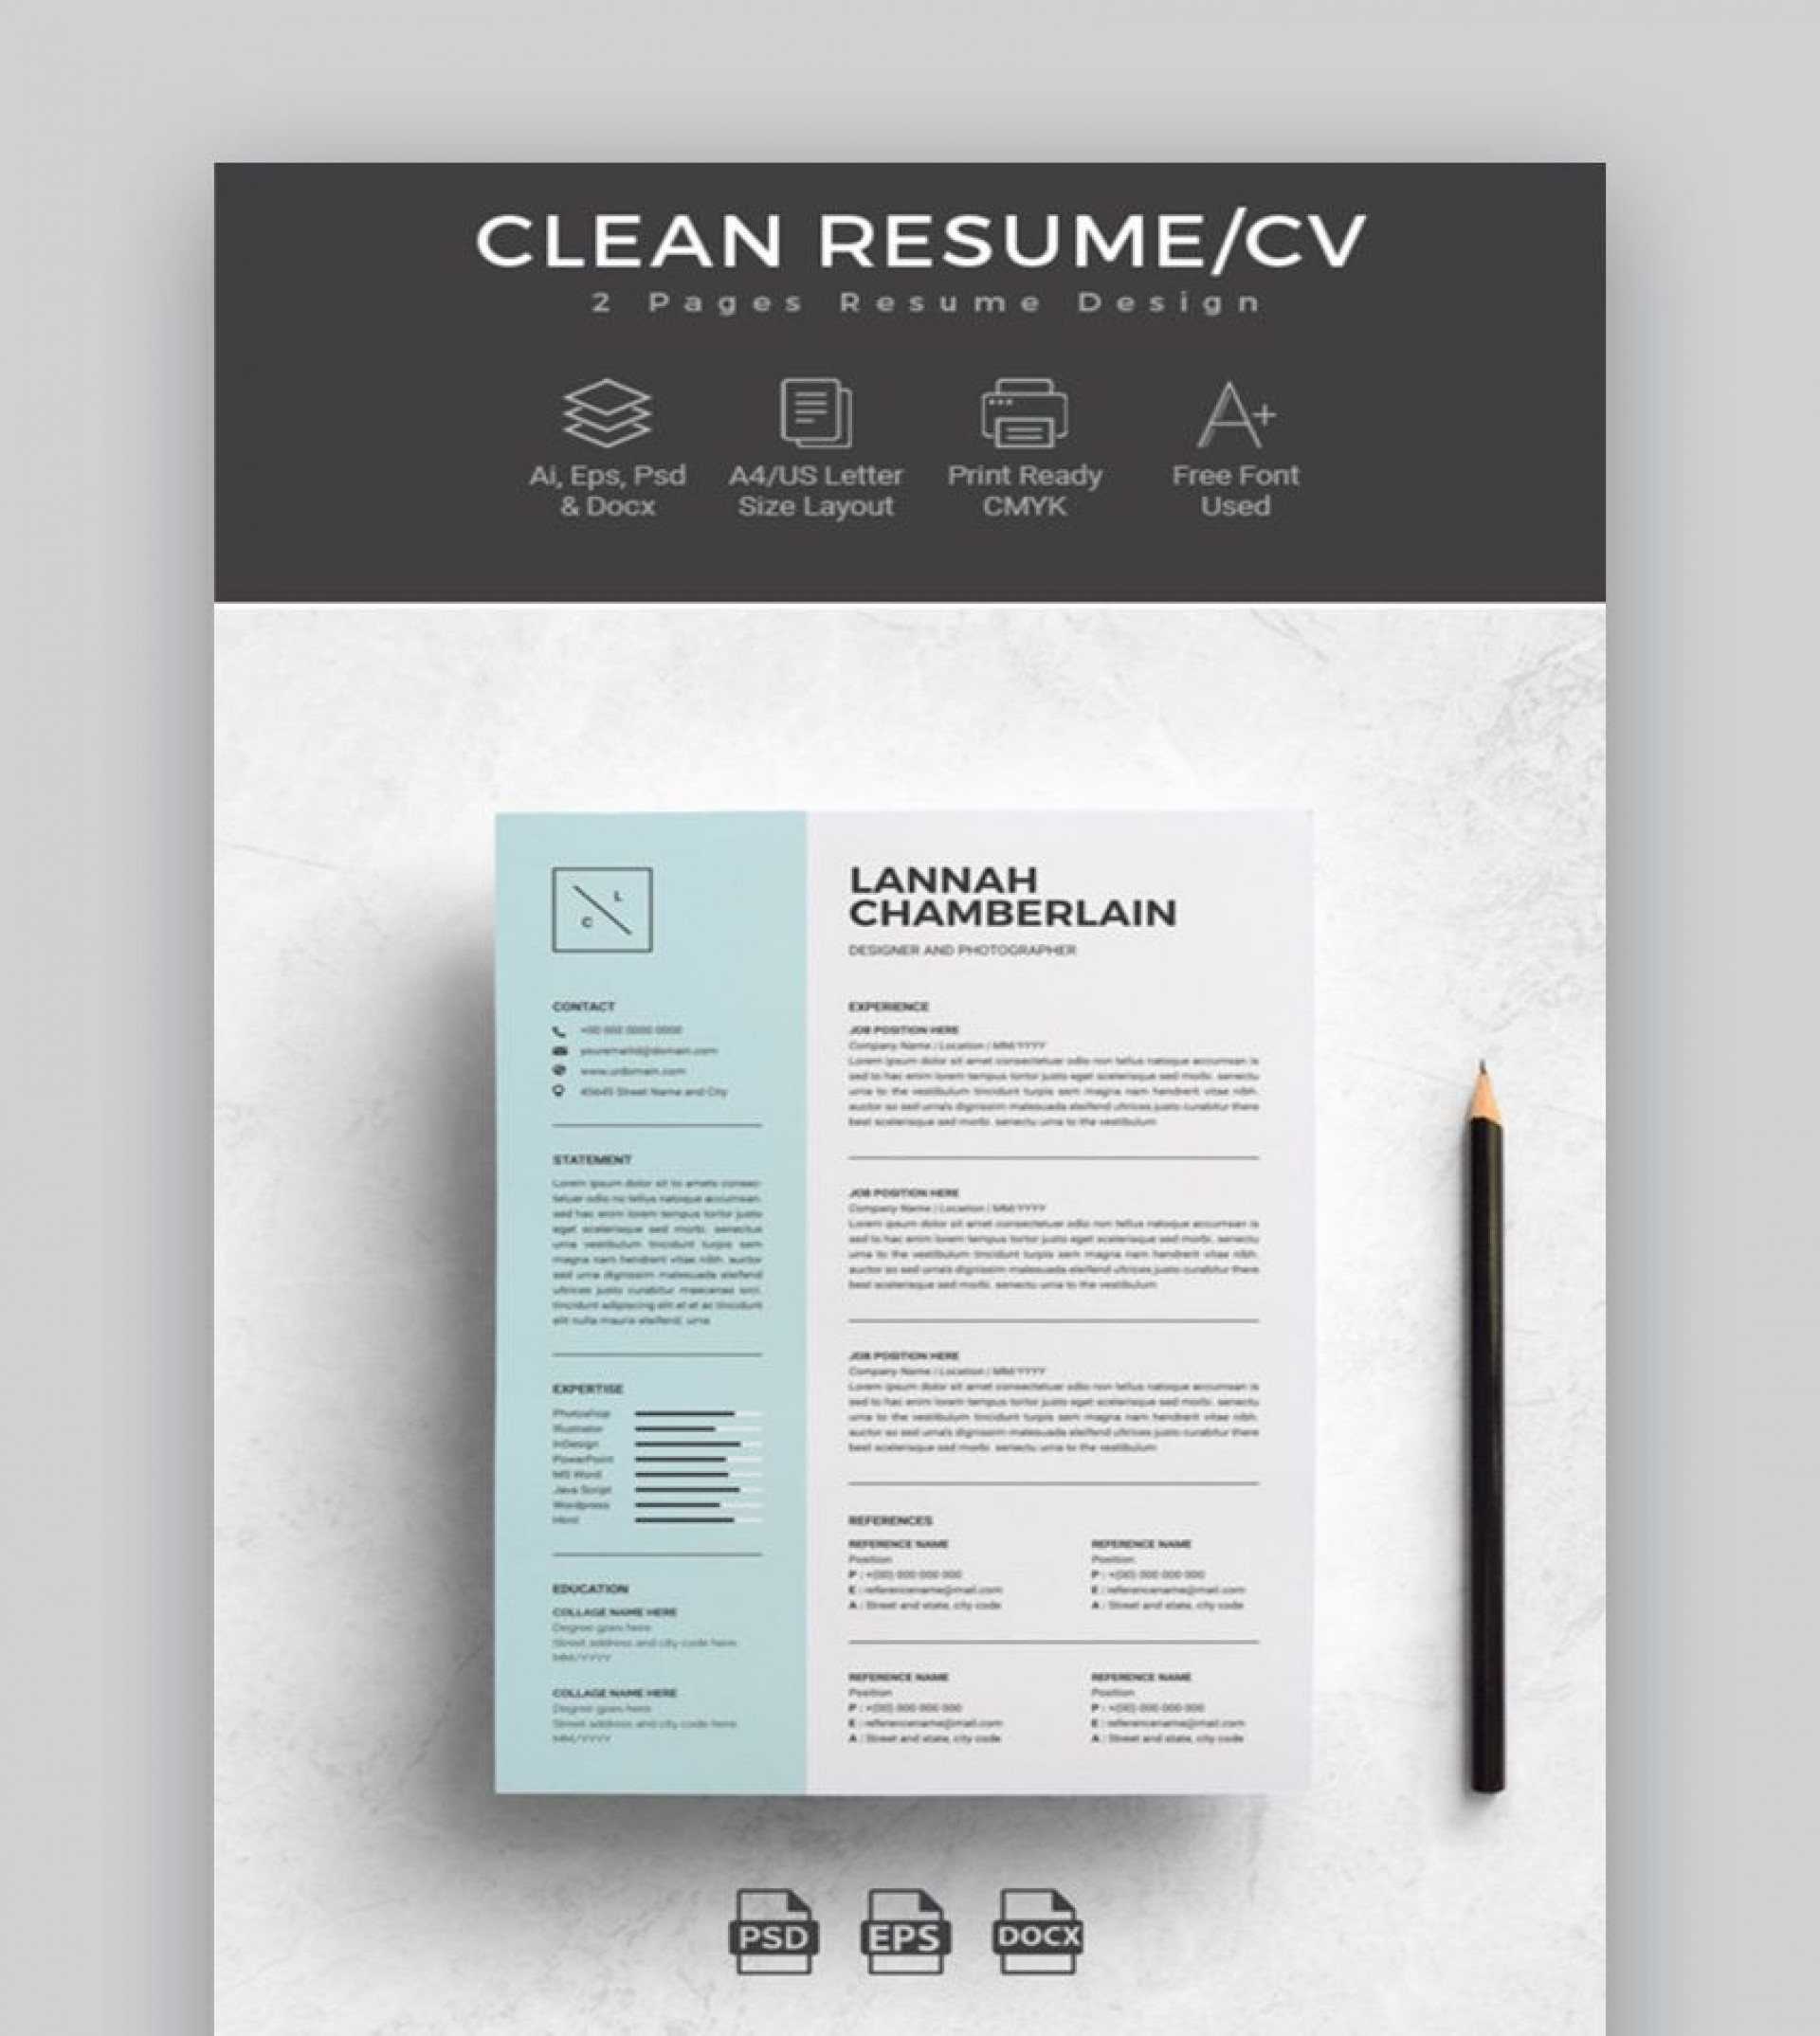 000 Stunning Free Cv Template Word Inspiration  Download South Africa In Format Online1920